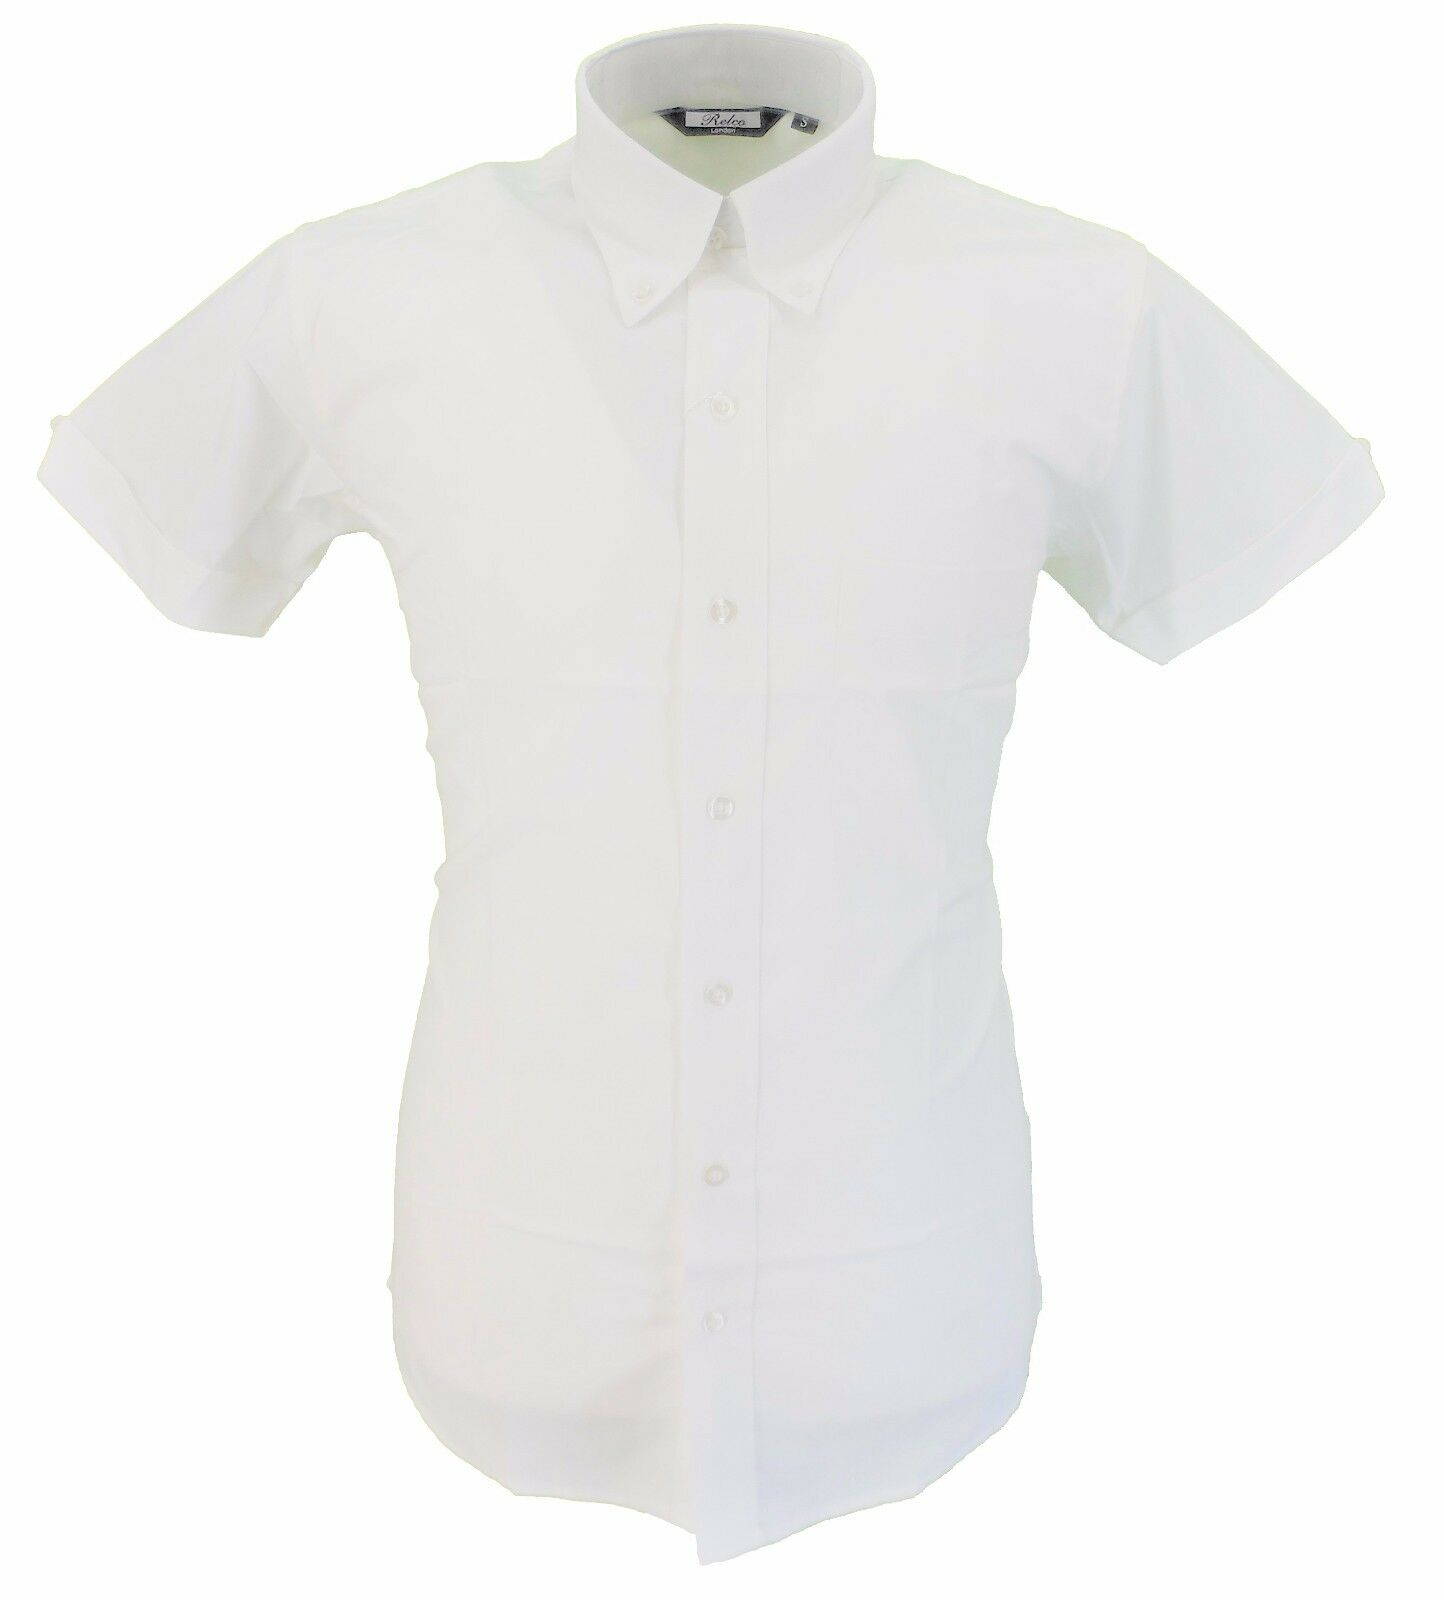 Relco Weiß Oxford Cotton Short Sleeved Retro Mod Button Down Shirts    | Rabatt